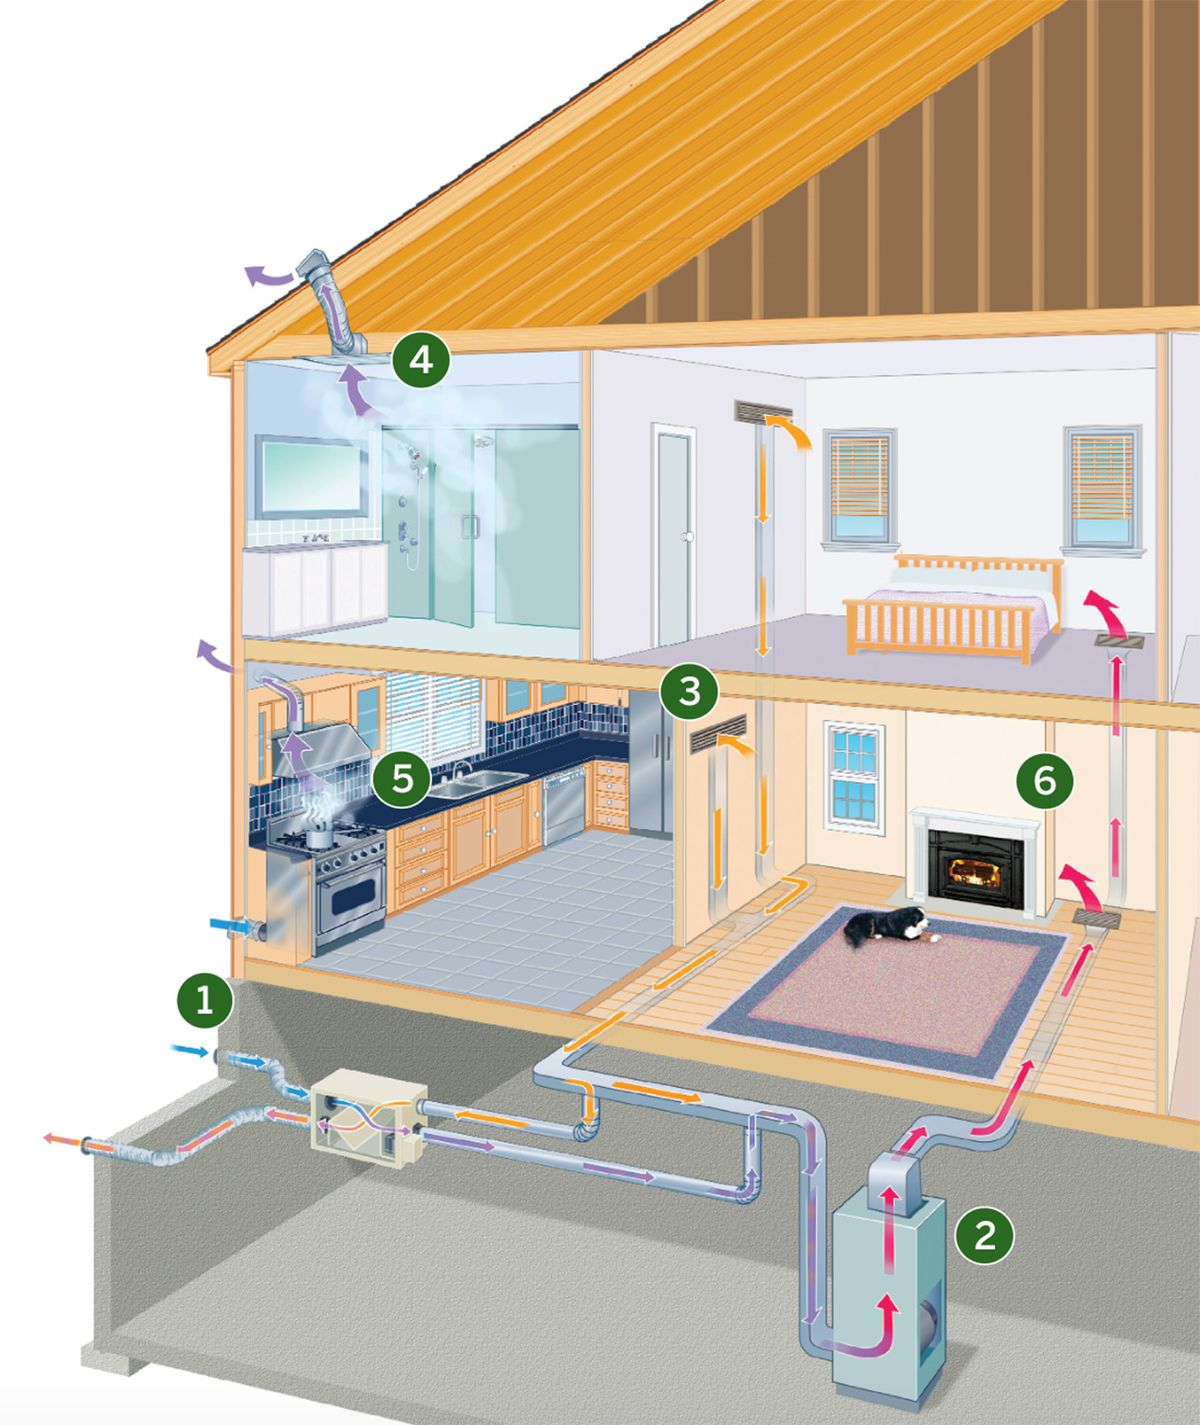 Ventilation System In House Diagram